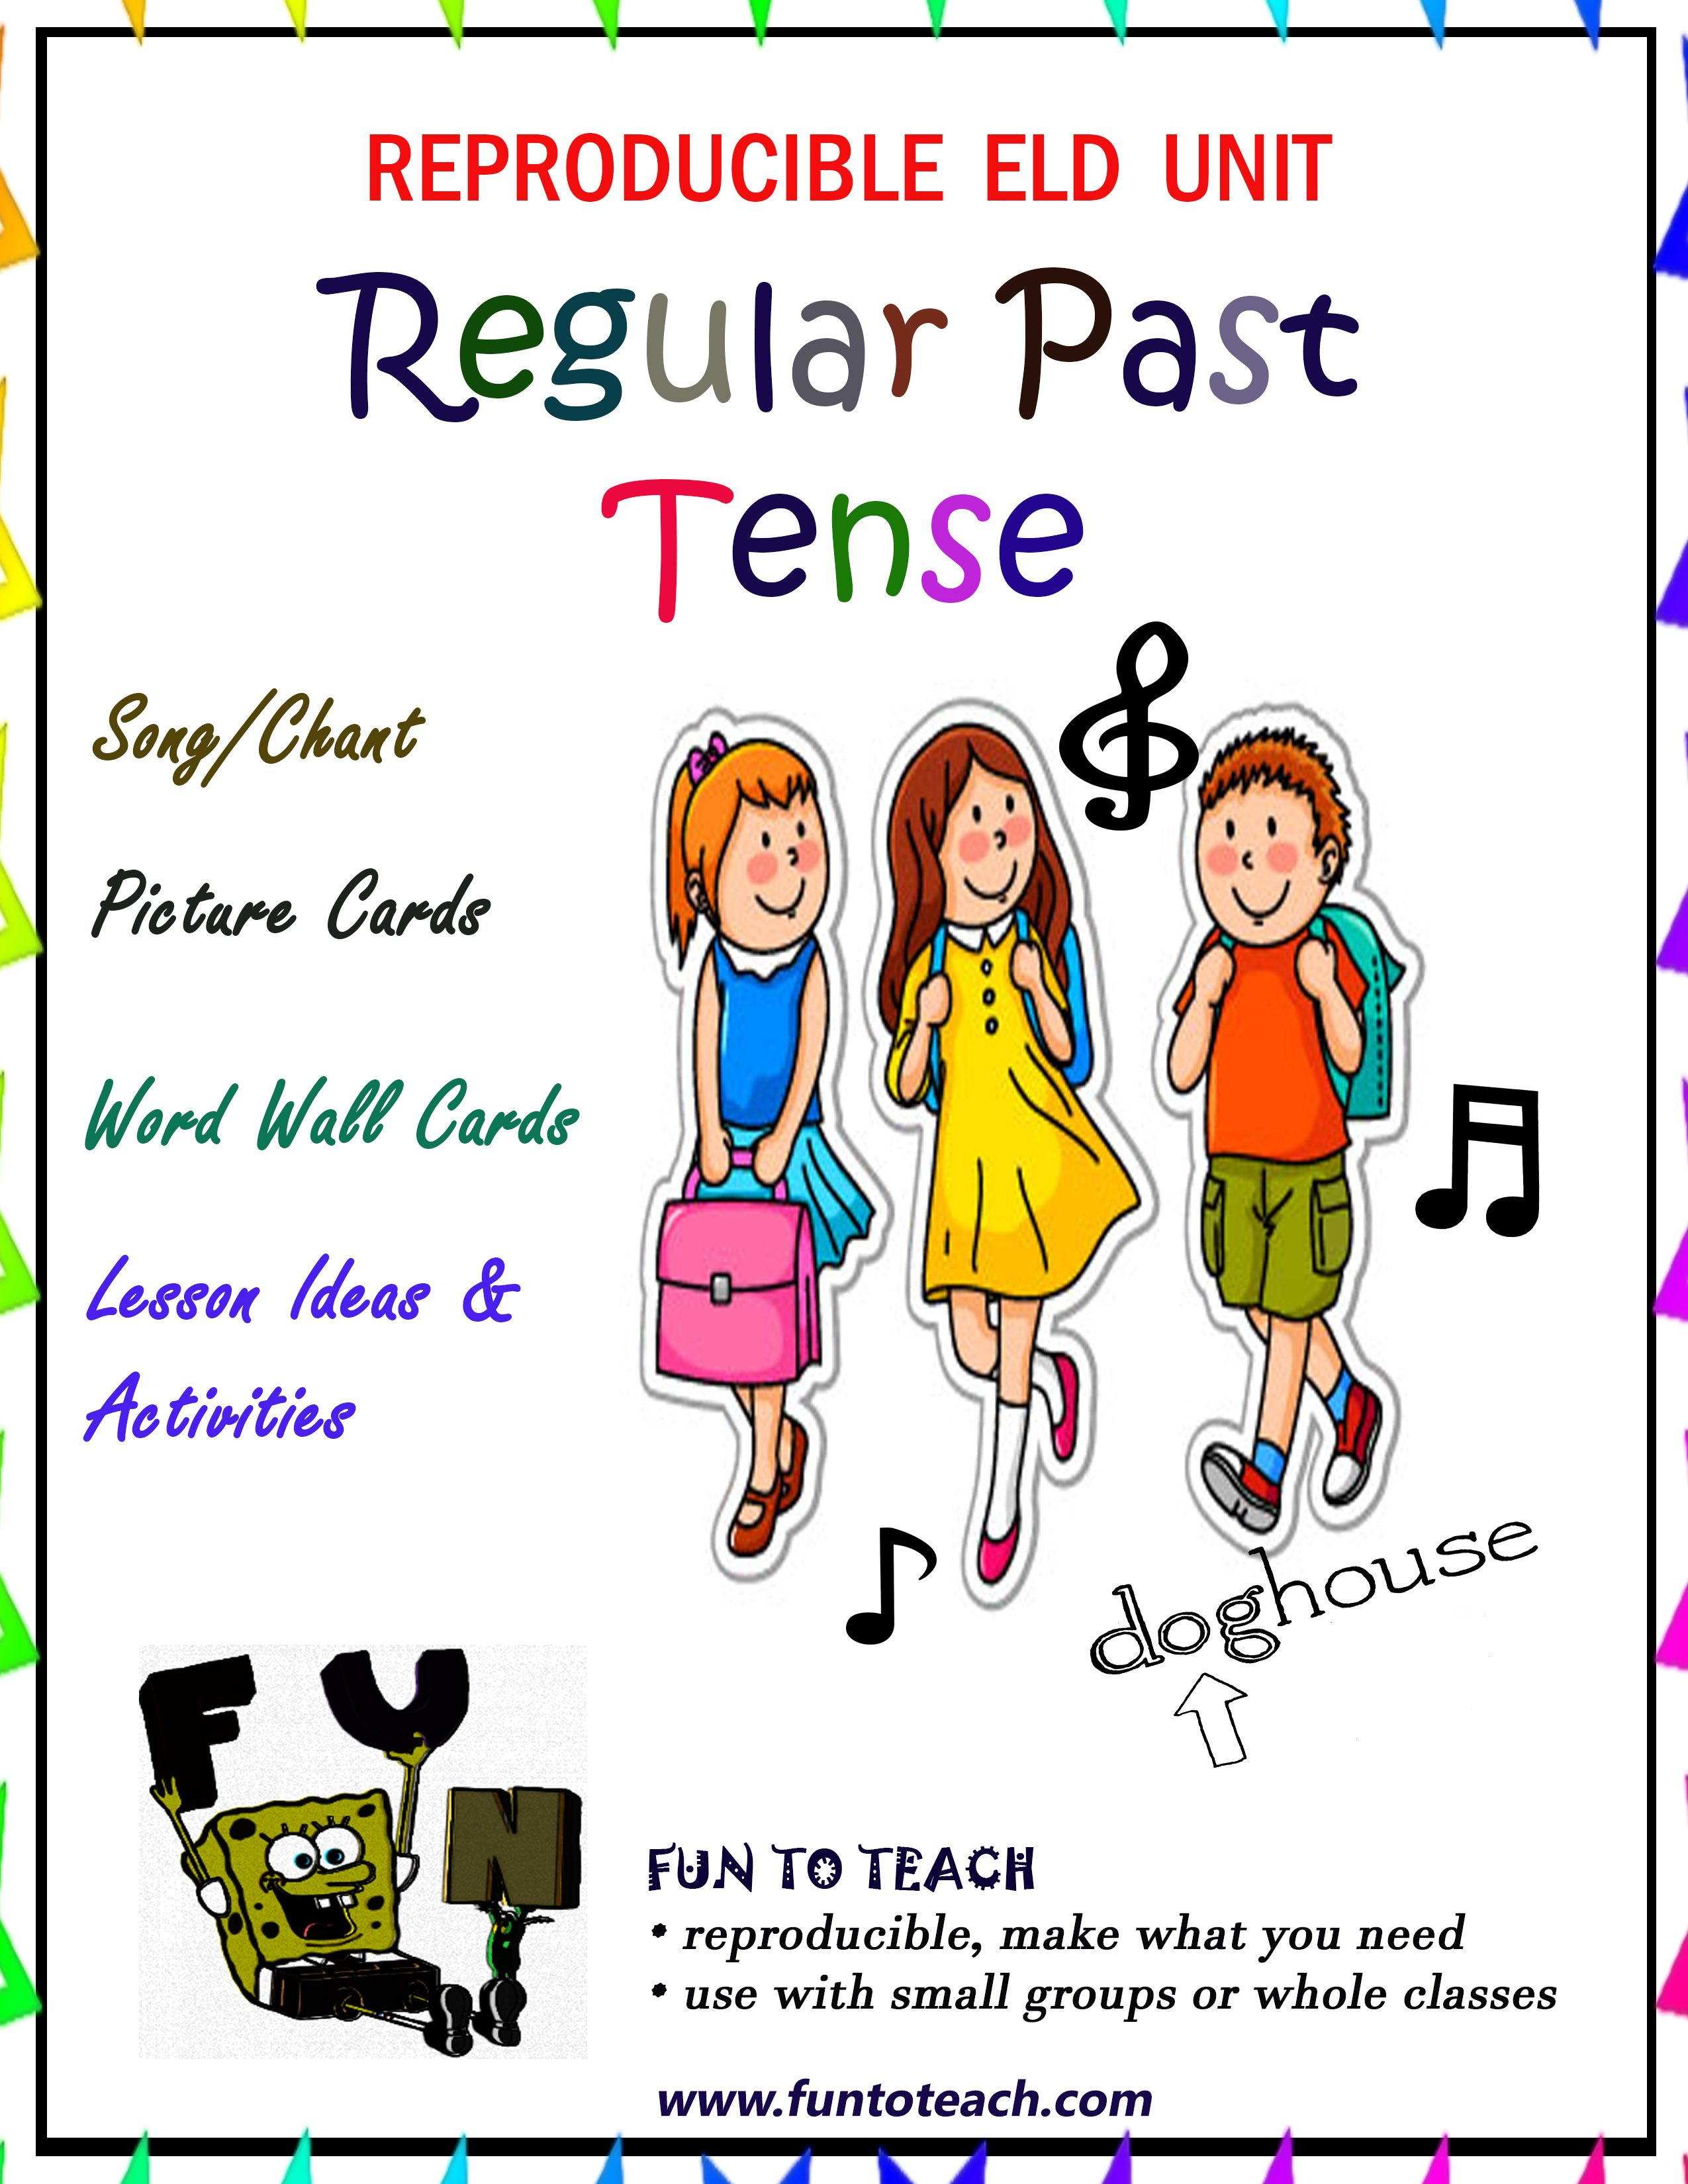 Regular Past Tense Verbs Song And Picture Cards